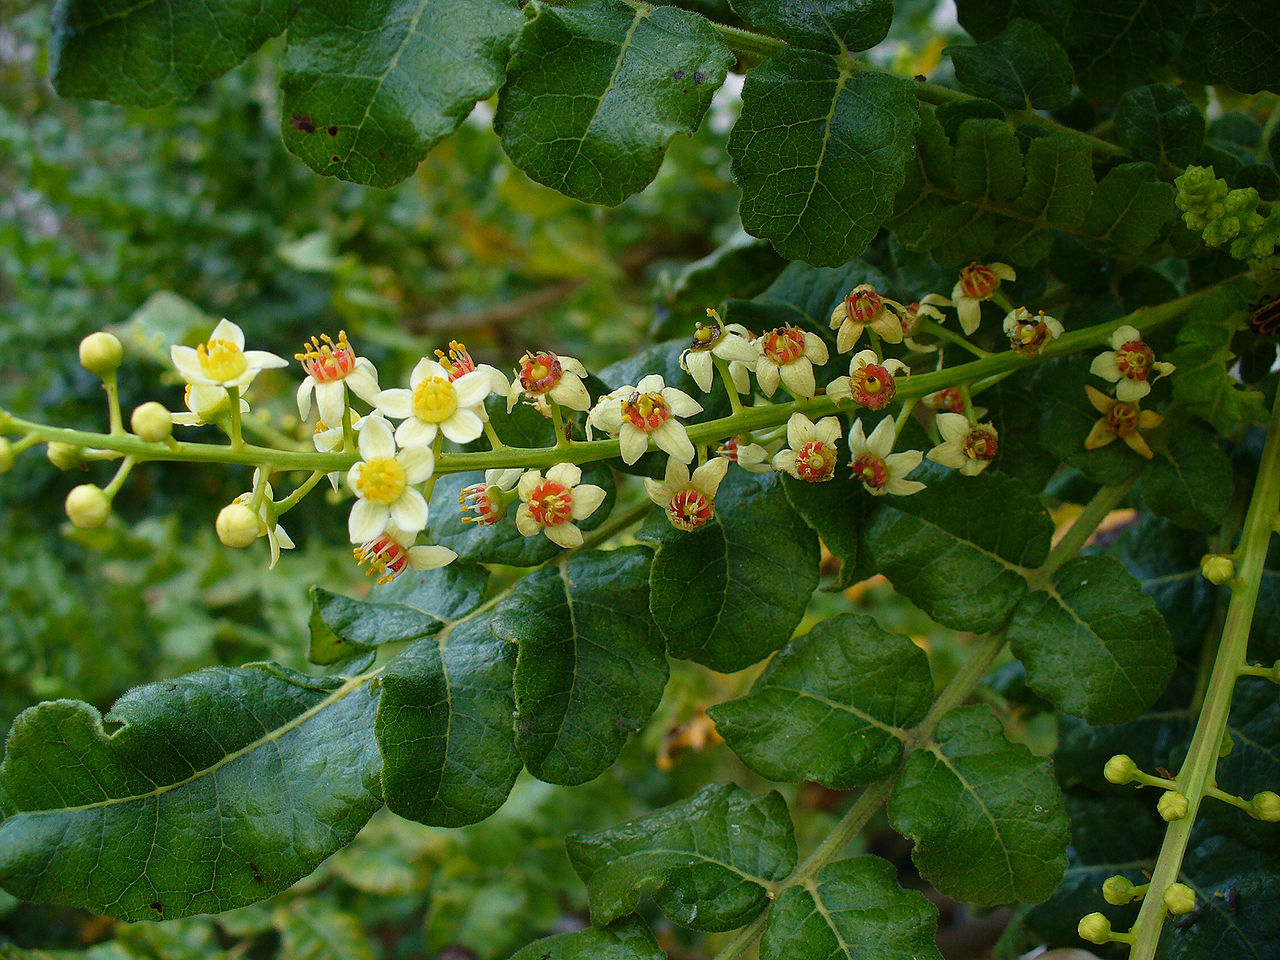 Boswellia serrata tree